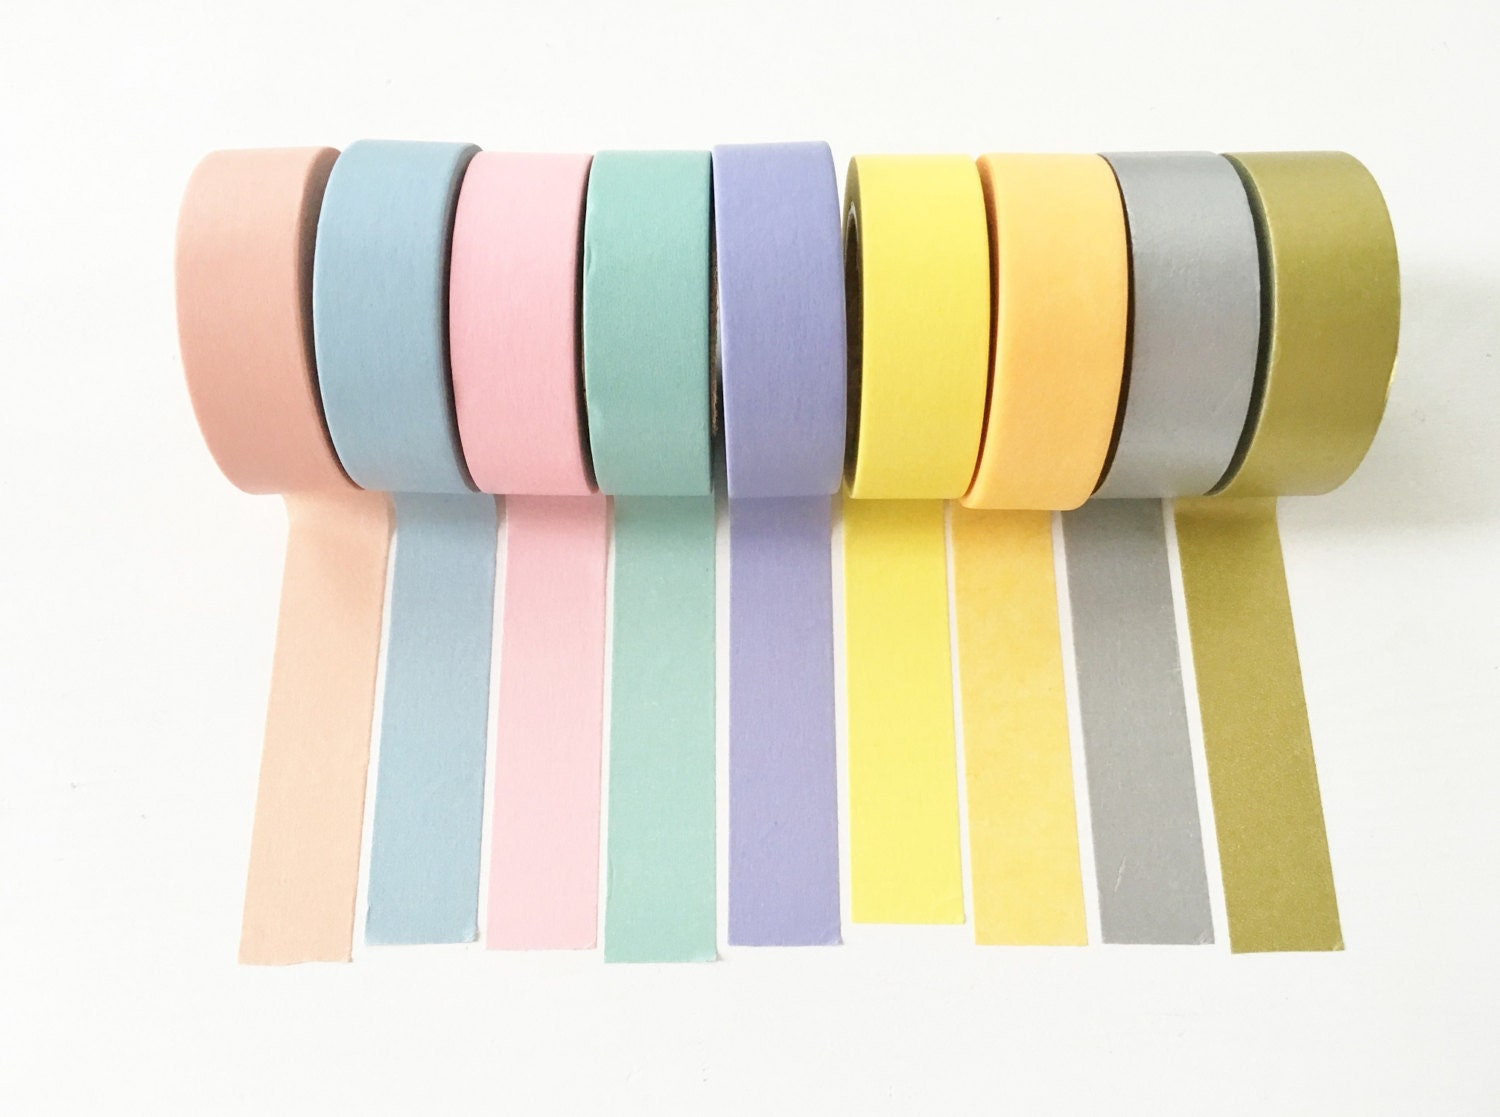 pastel neon washi tape set from papergeekco on etsy studio. Black Bedroom Furniture Sets. Home Design Ideas